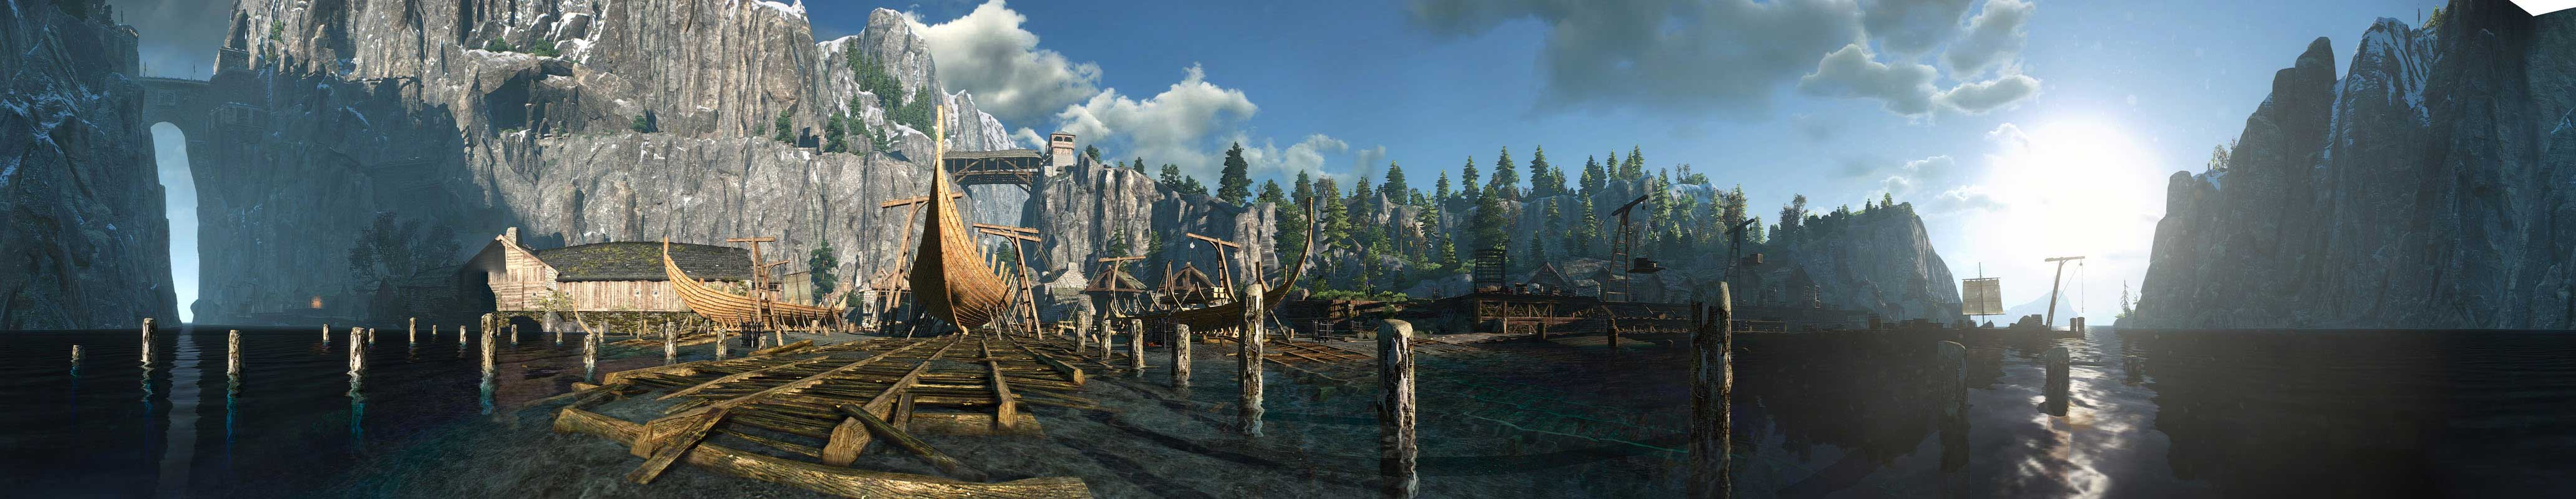 the_witcher_3_wild_hunt_panoramas_1